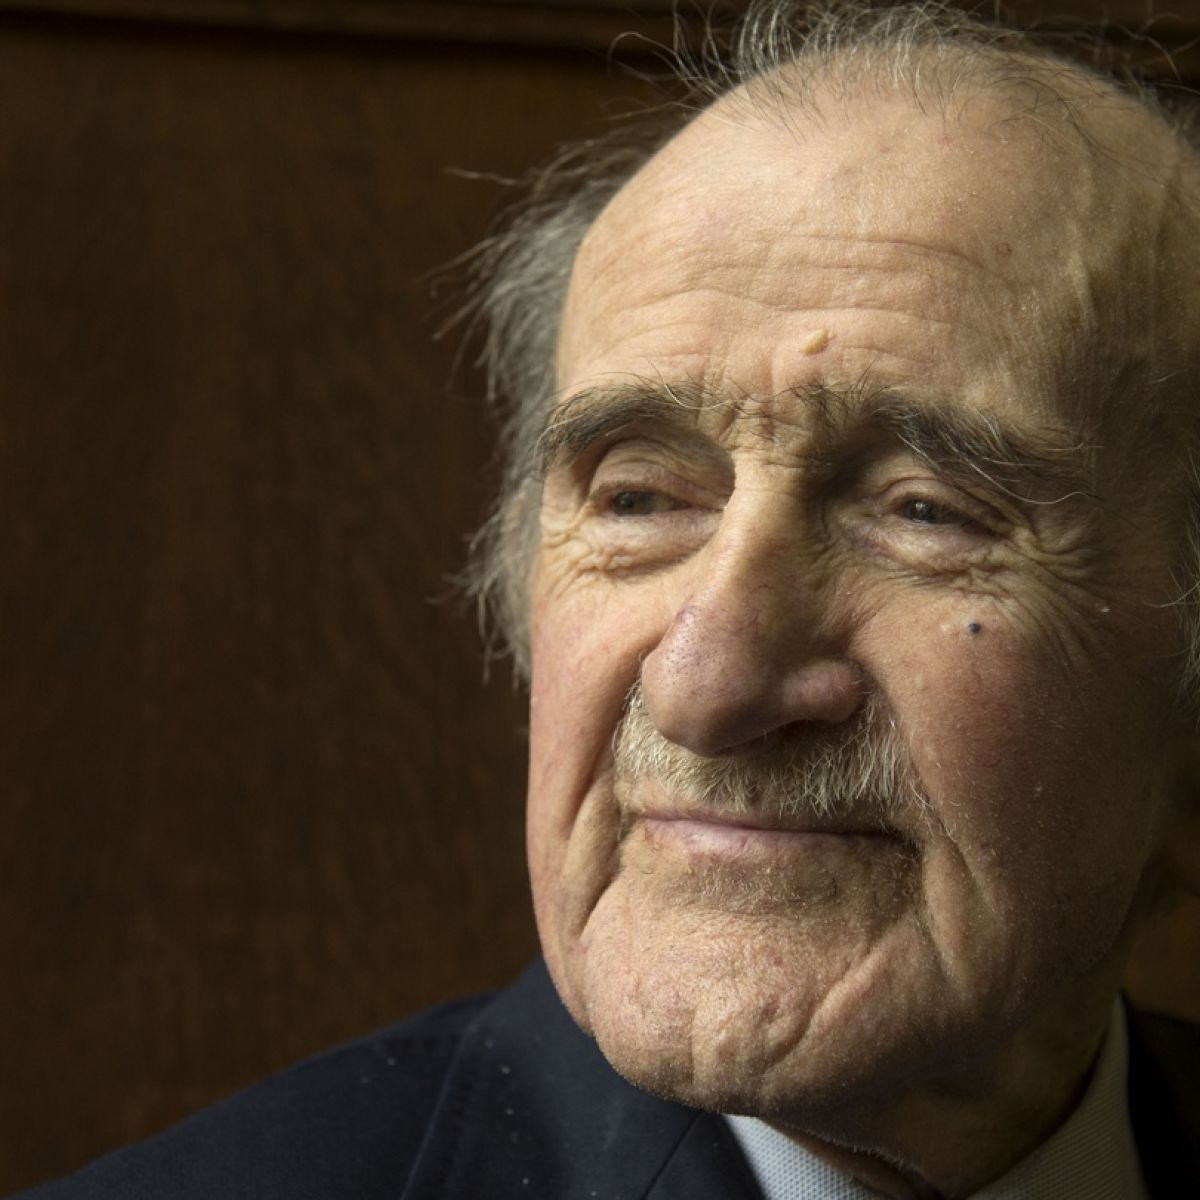 Maurice Gaffney: Respected barrister who fostered collegiality